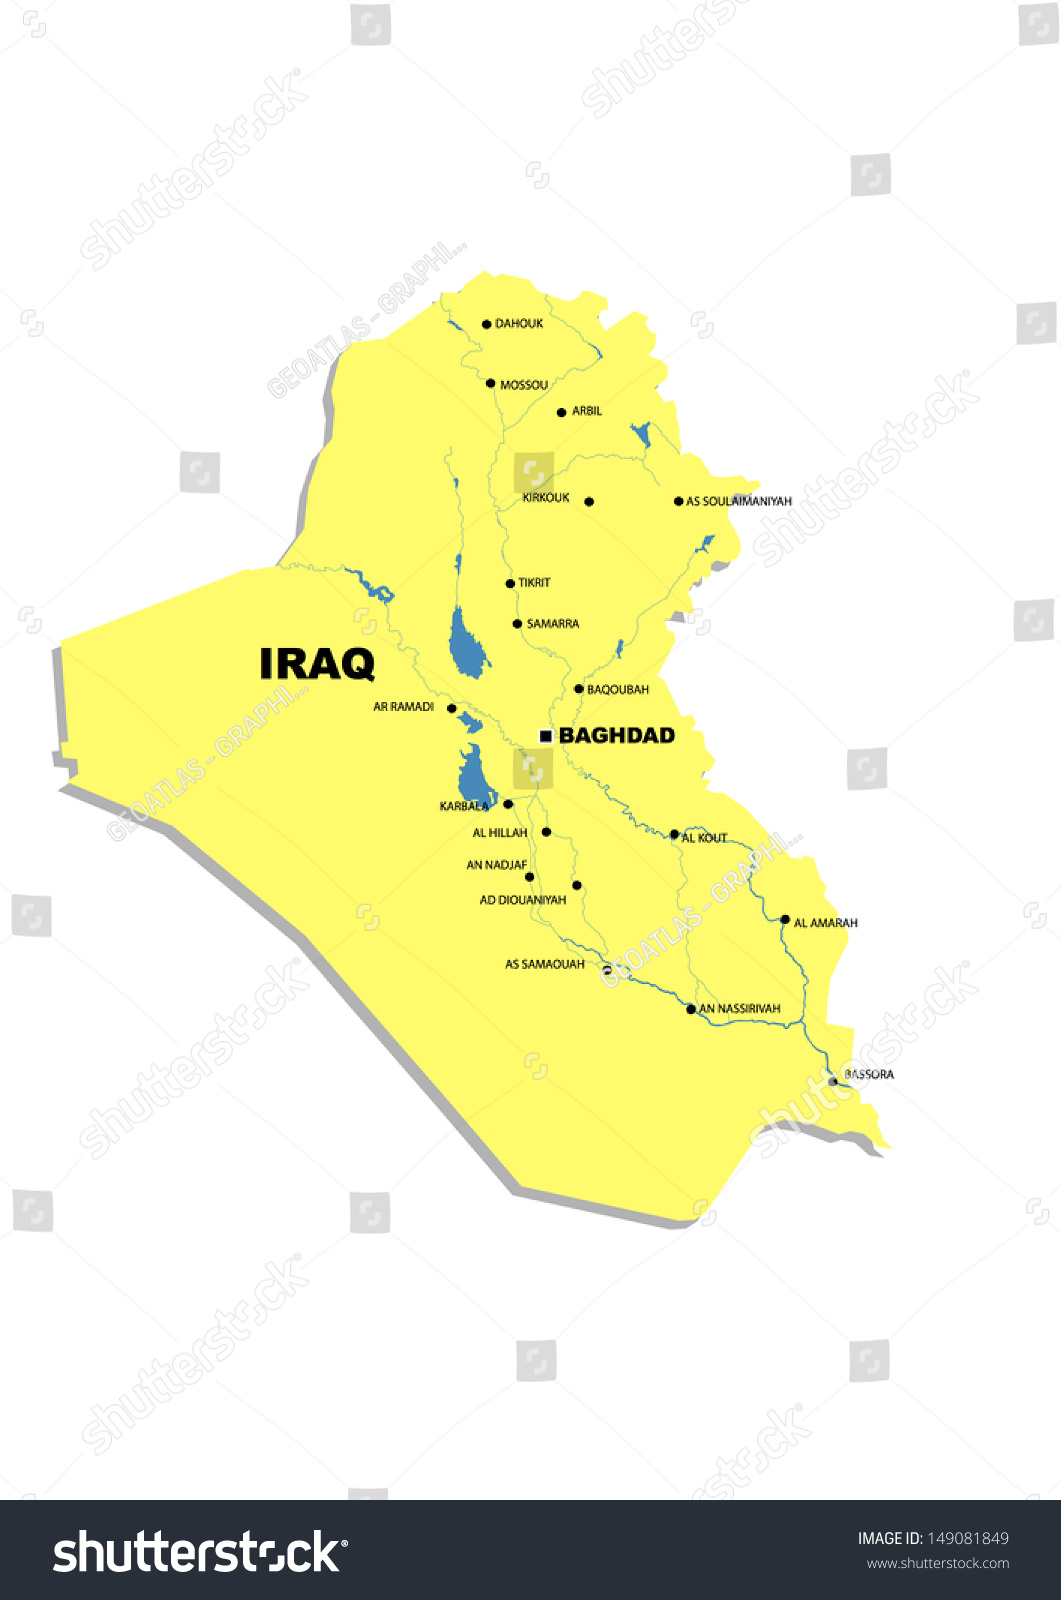 Simple Map Iraq Stock Illustration 149081849   Shutterstock Simple map of Iraq